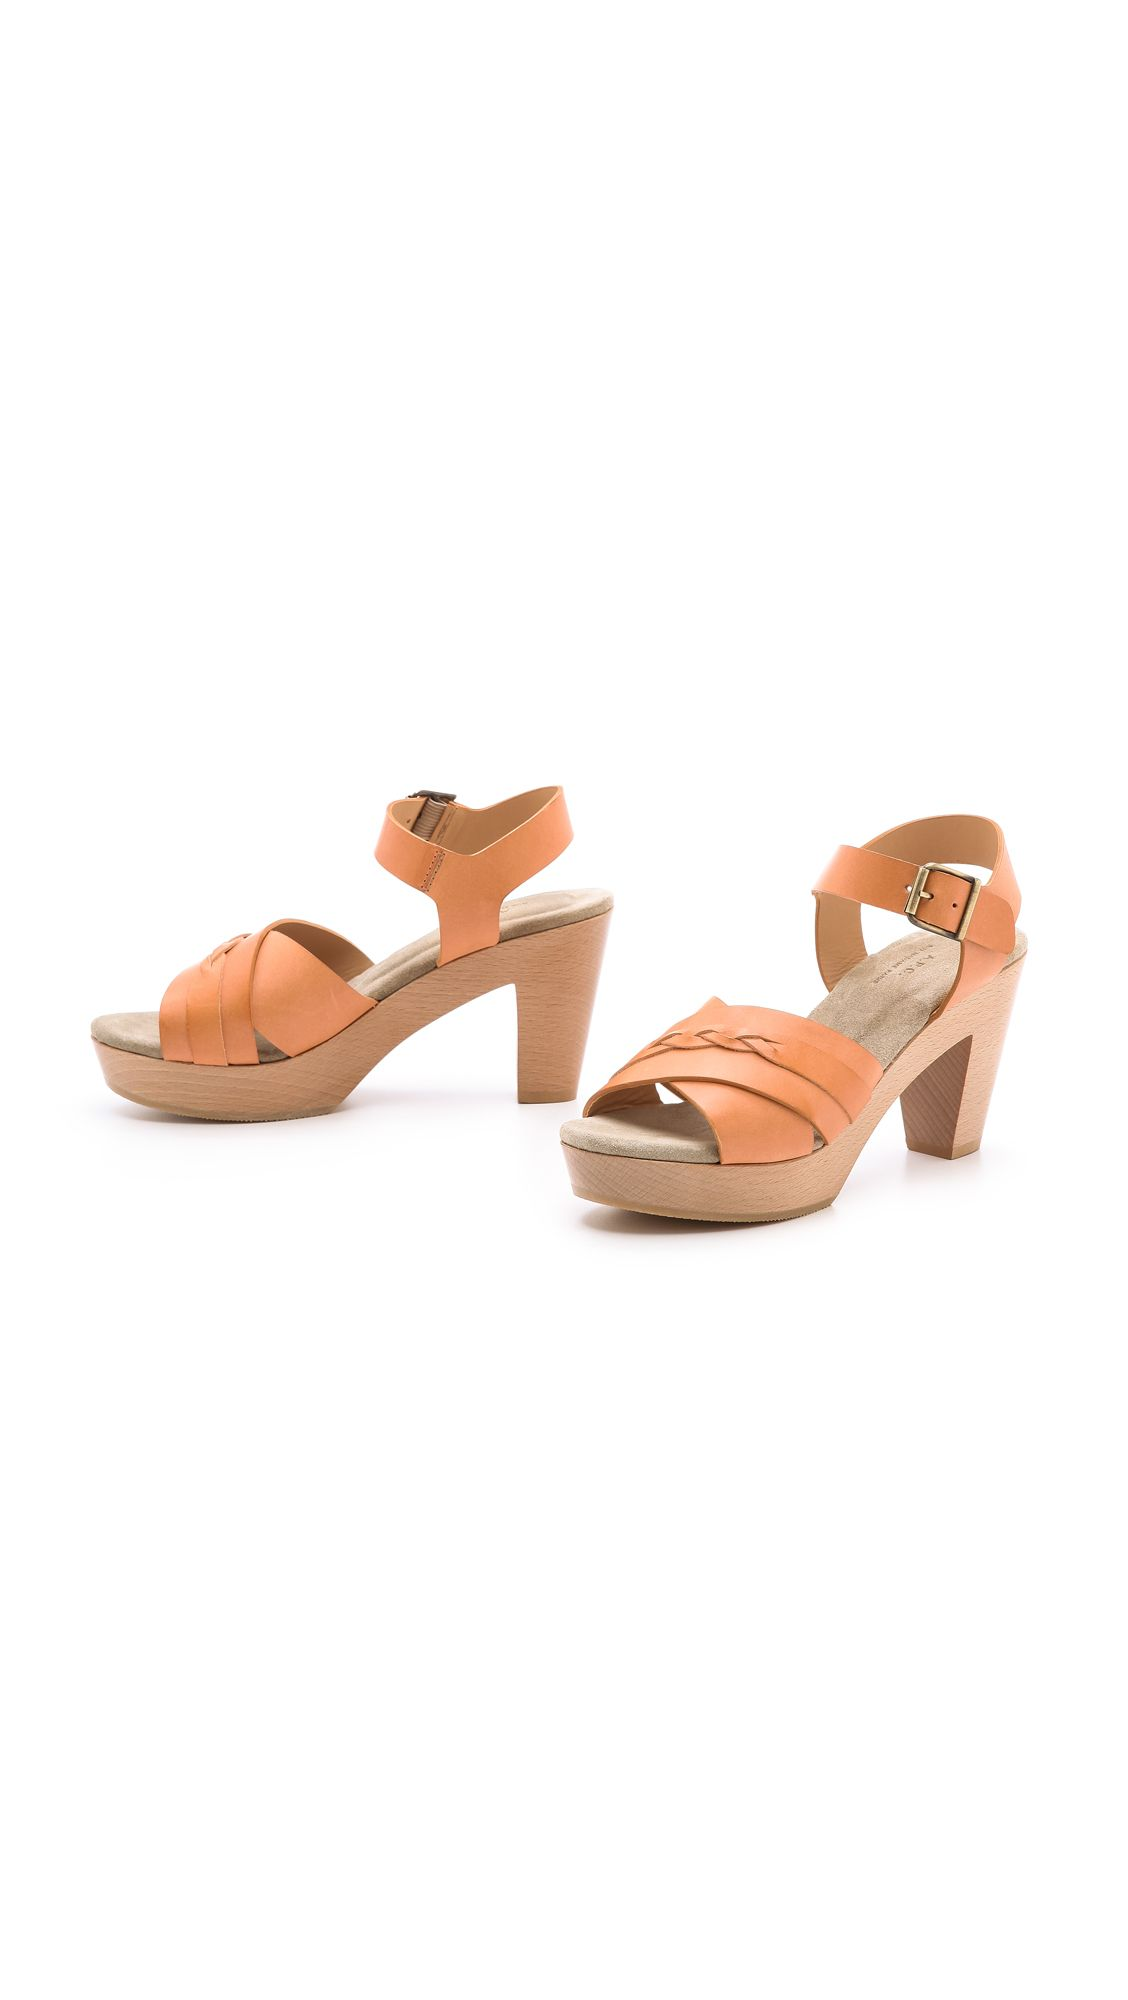 a277485858b4 A.p.c. Braided Mid Heel Sandals in Orange (Beige Natural)